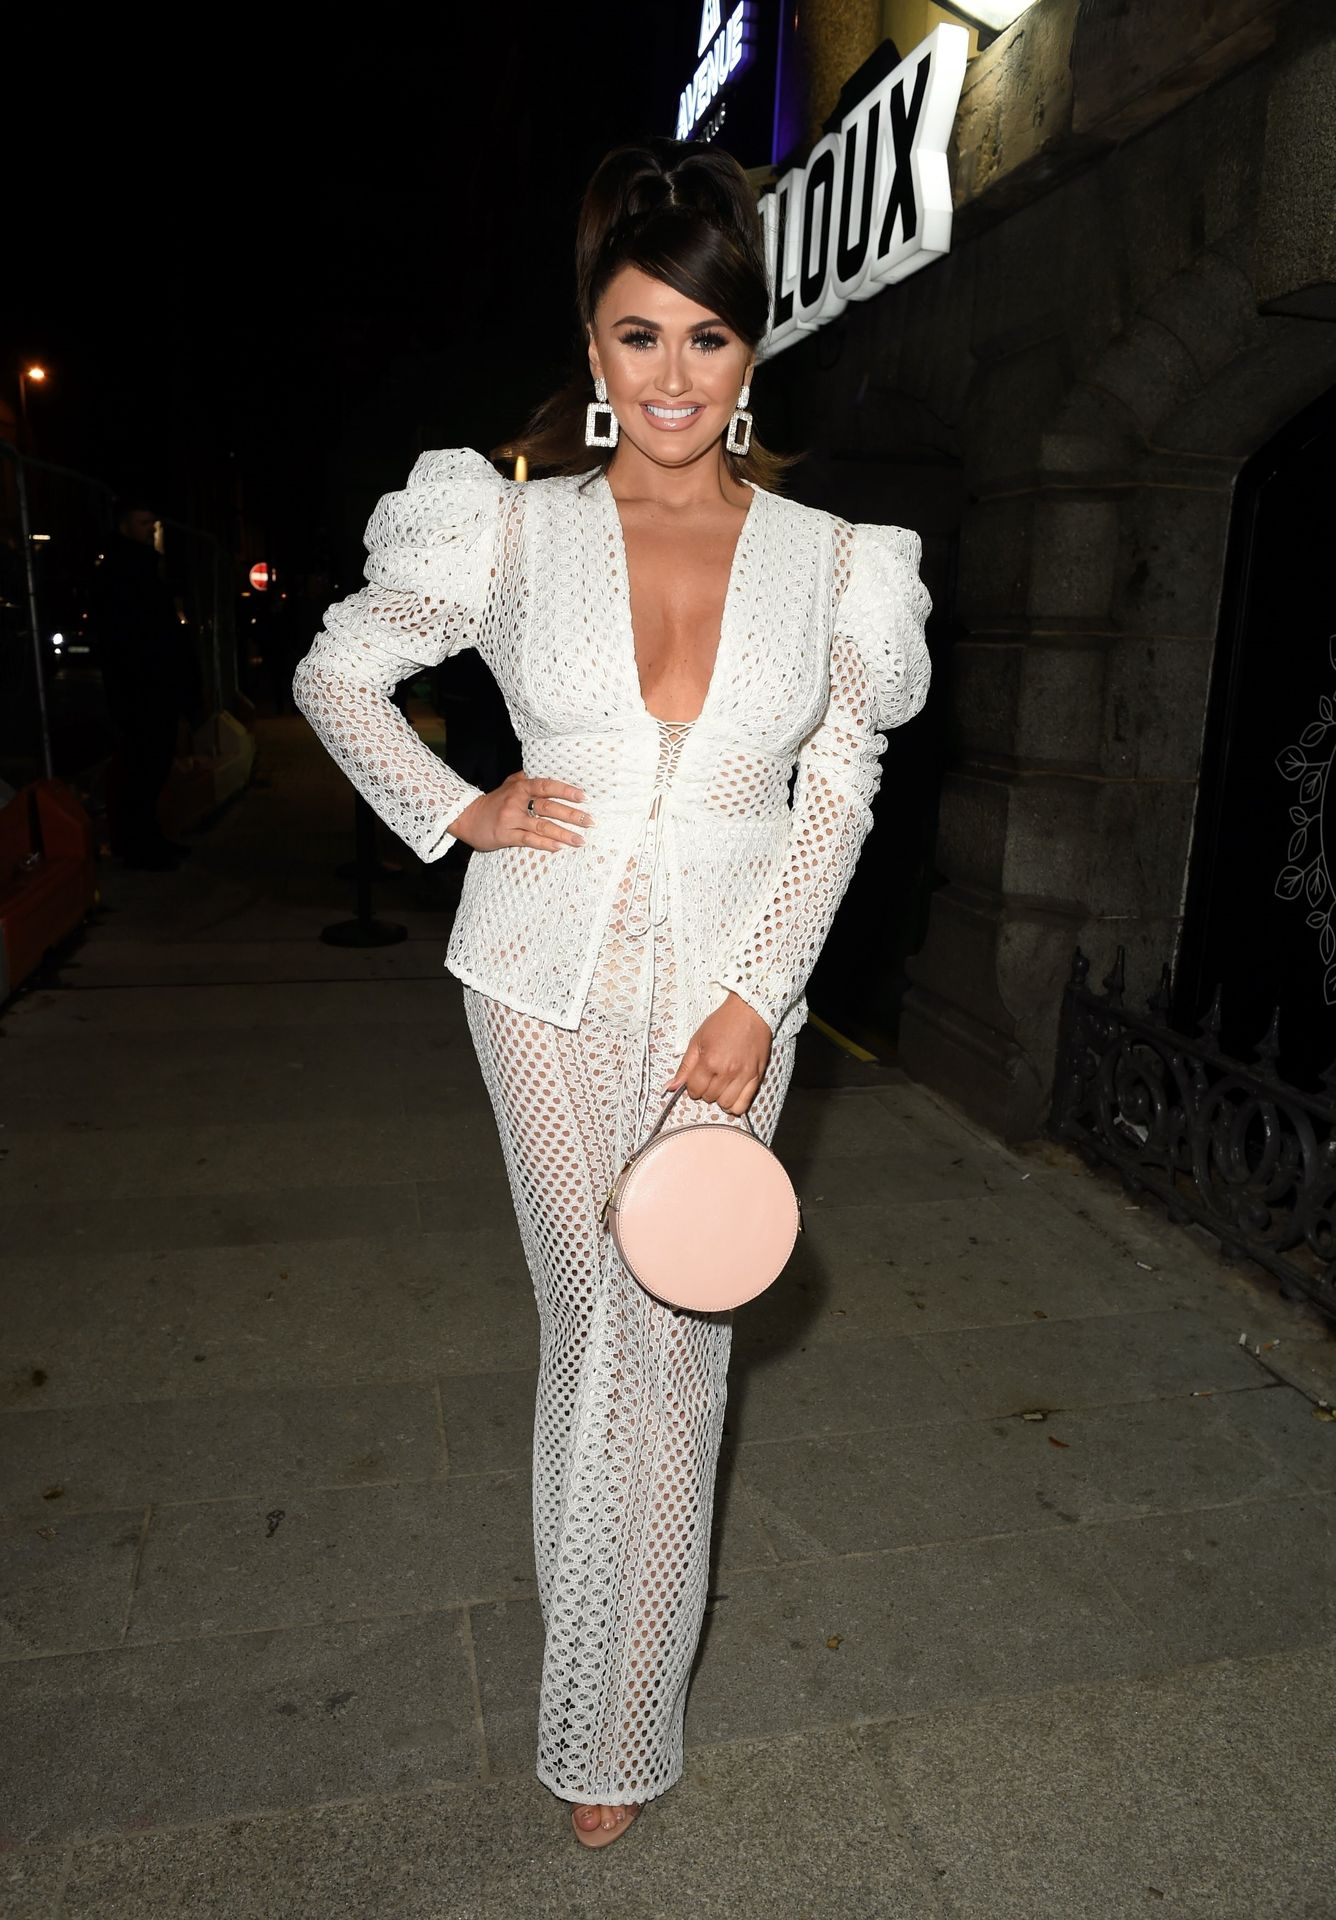 Charlotte Dawson Shows Her Boobs At Avenue Nightclub Launch Party 0021